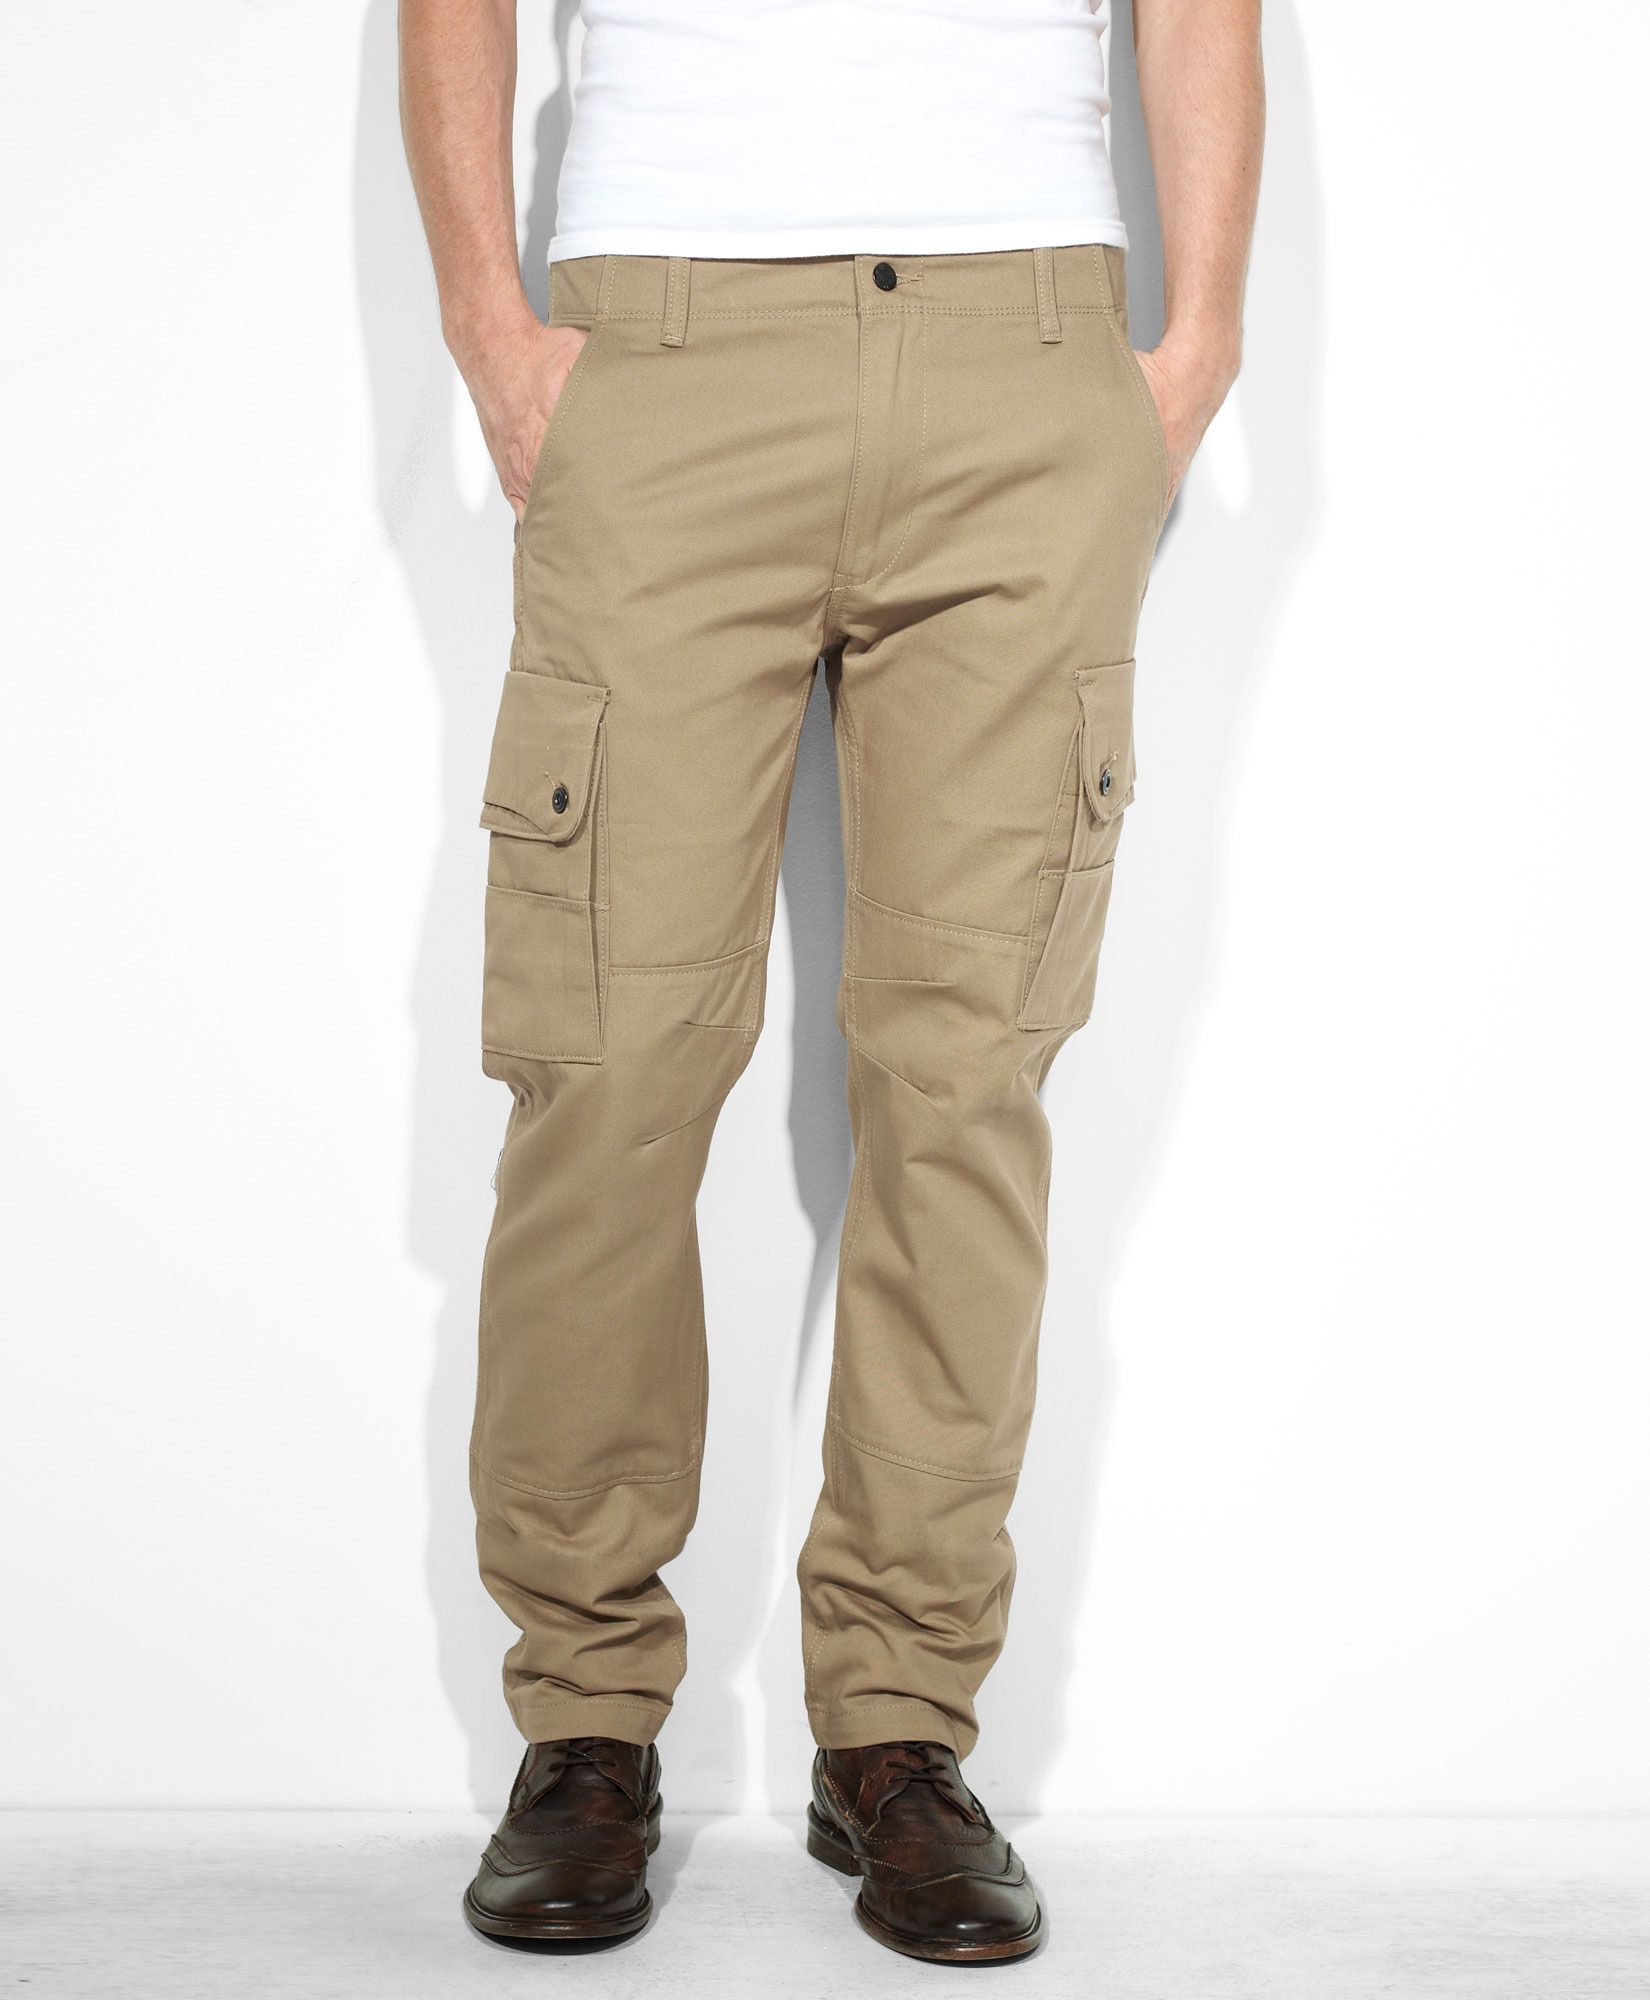 26483b47 Levi's 508™ Regular Taper Cargo Pants - True Chino - Jeans | LEVI'S ...